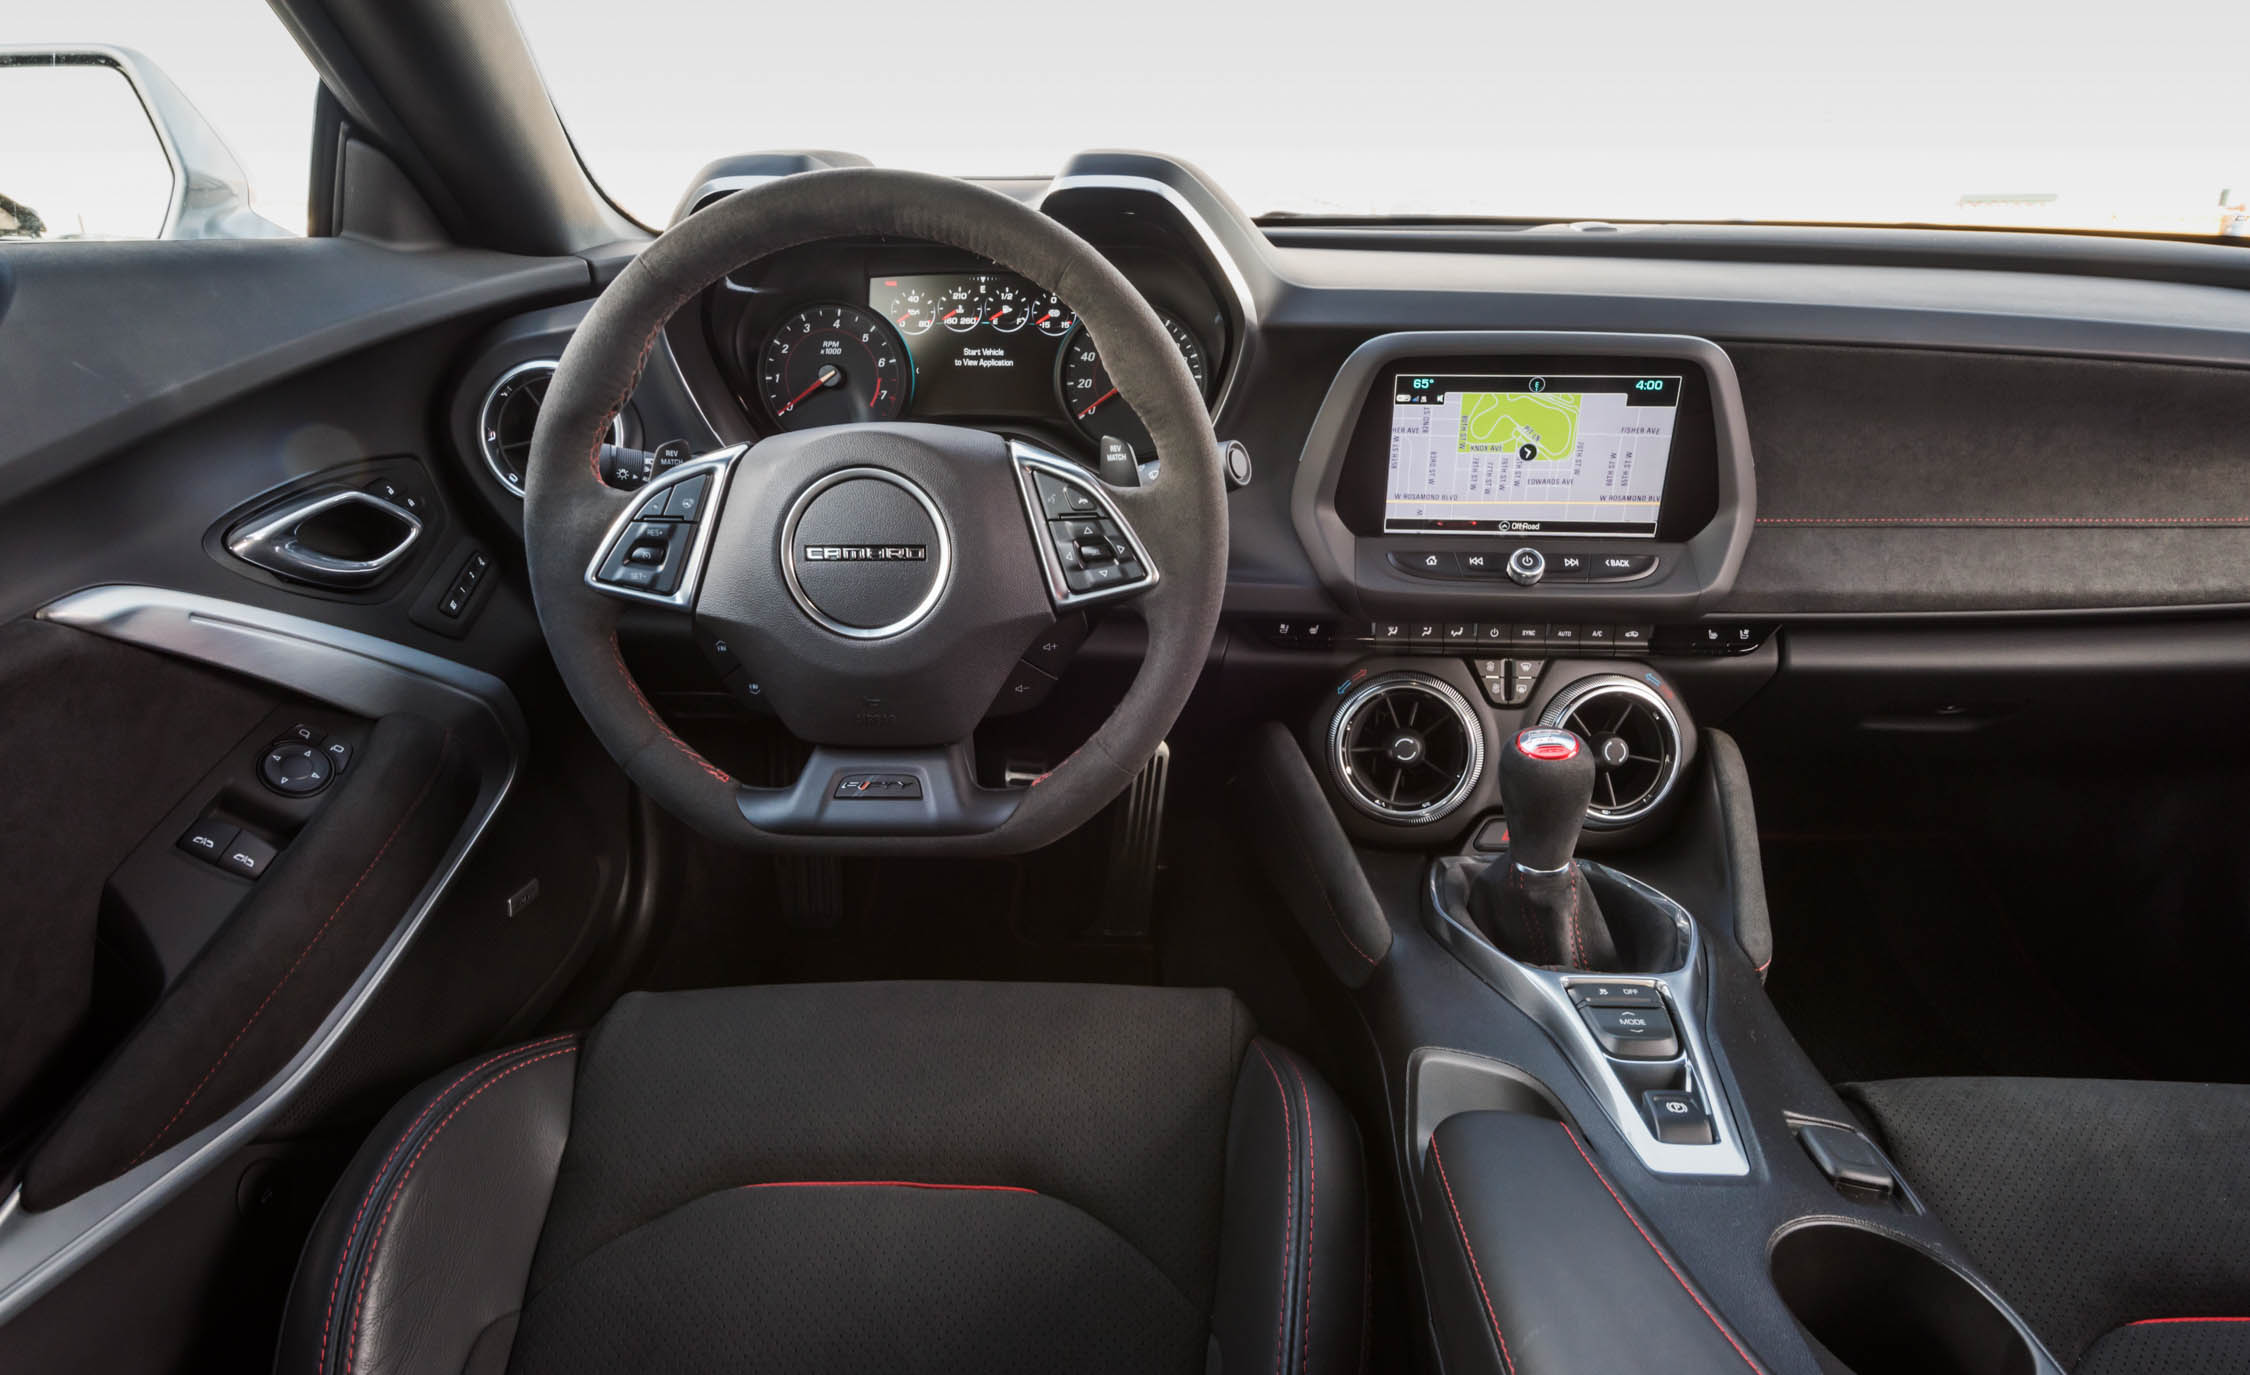 2017 Chevrolet Camaro ZL1 Interior Steering And Dashboard (Photo 25 of 62)